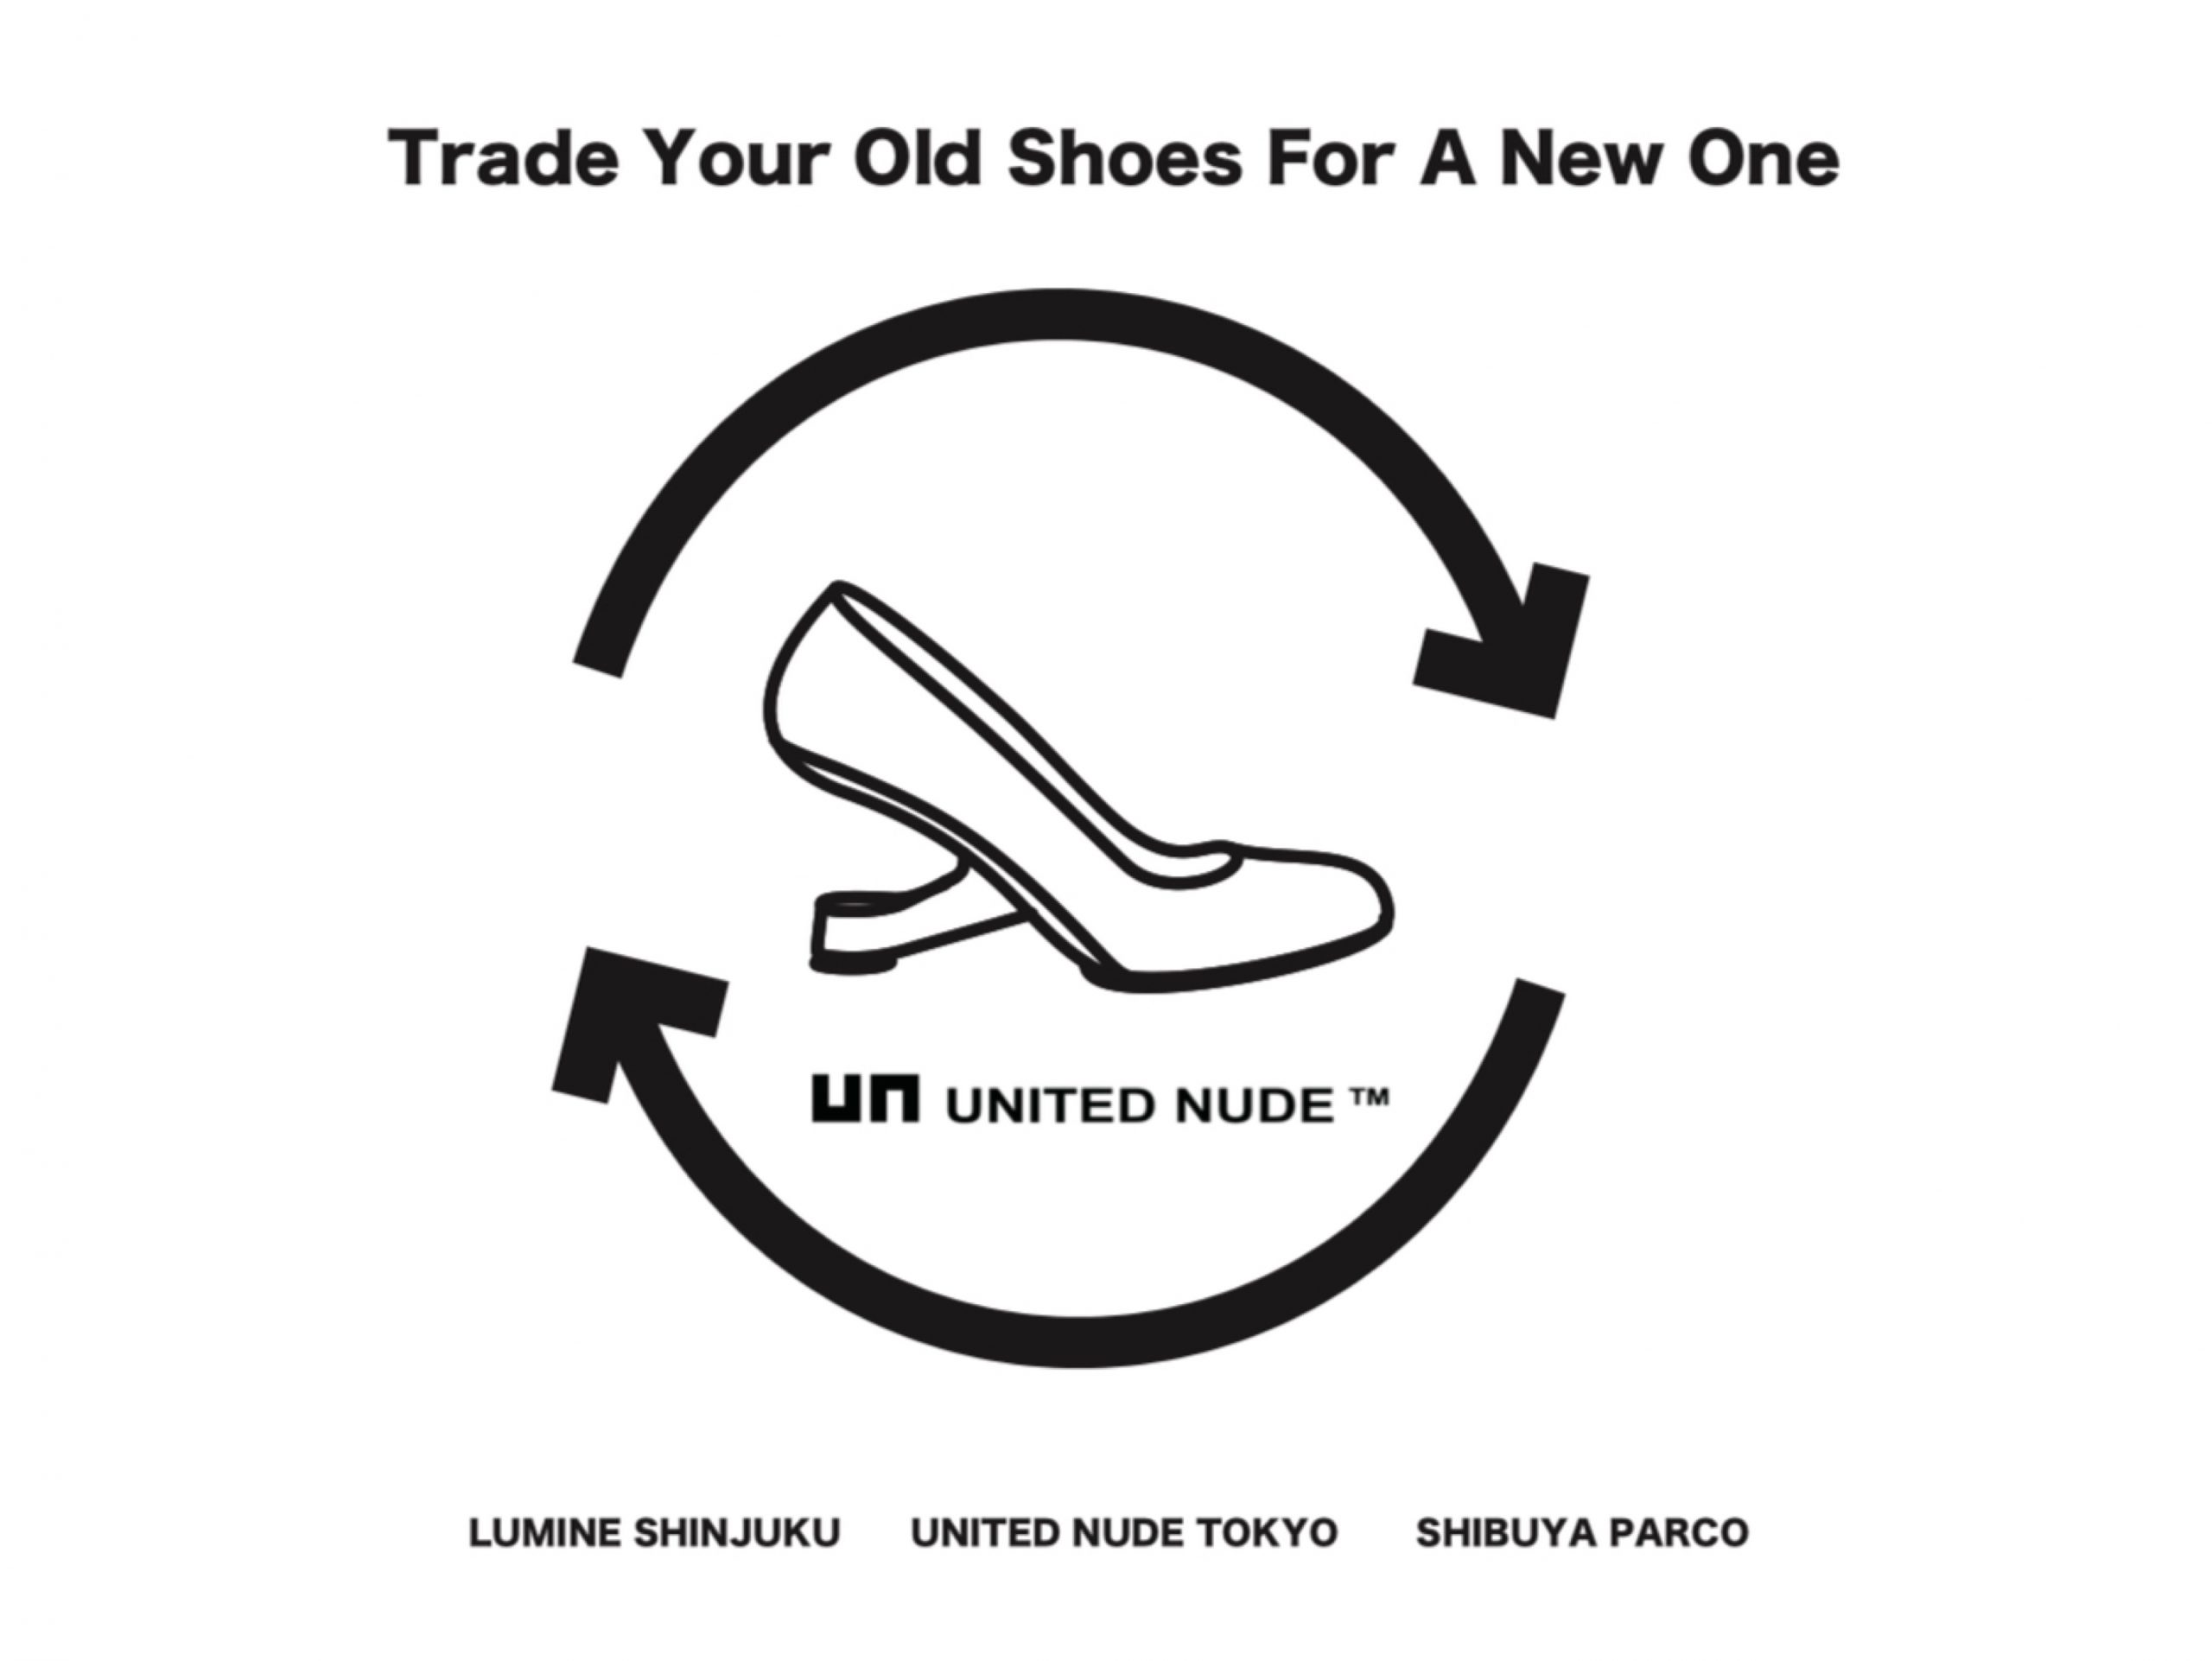 Trade Your Old Shoes For A New One